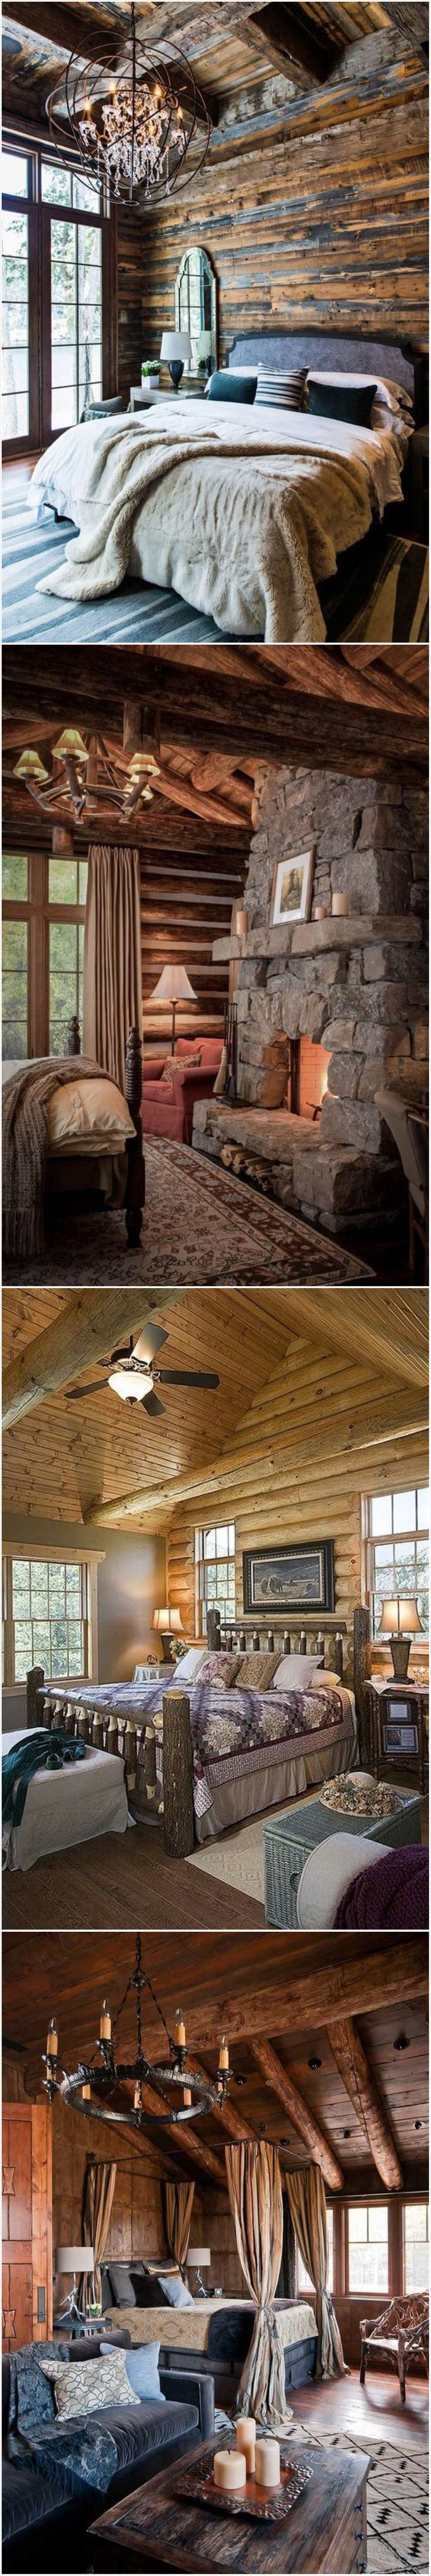 Log Home Rustic Bedroom Designs ⭐️